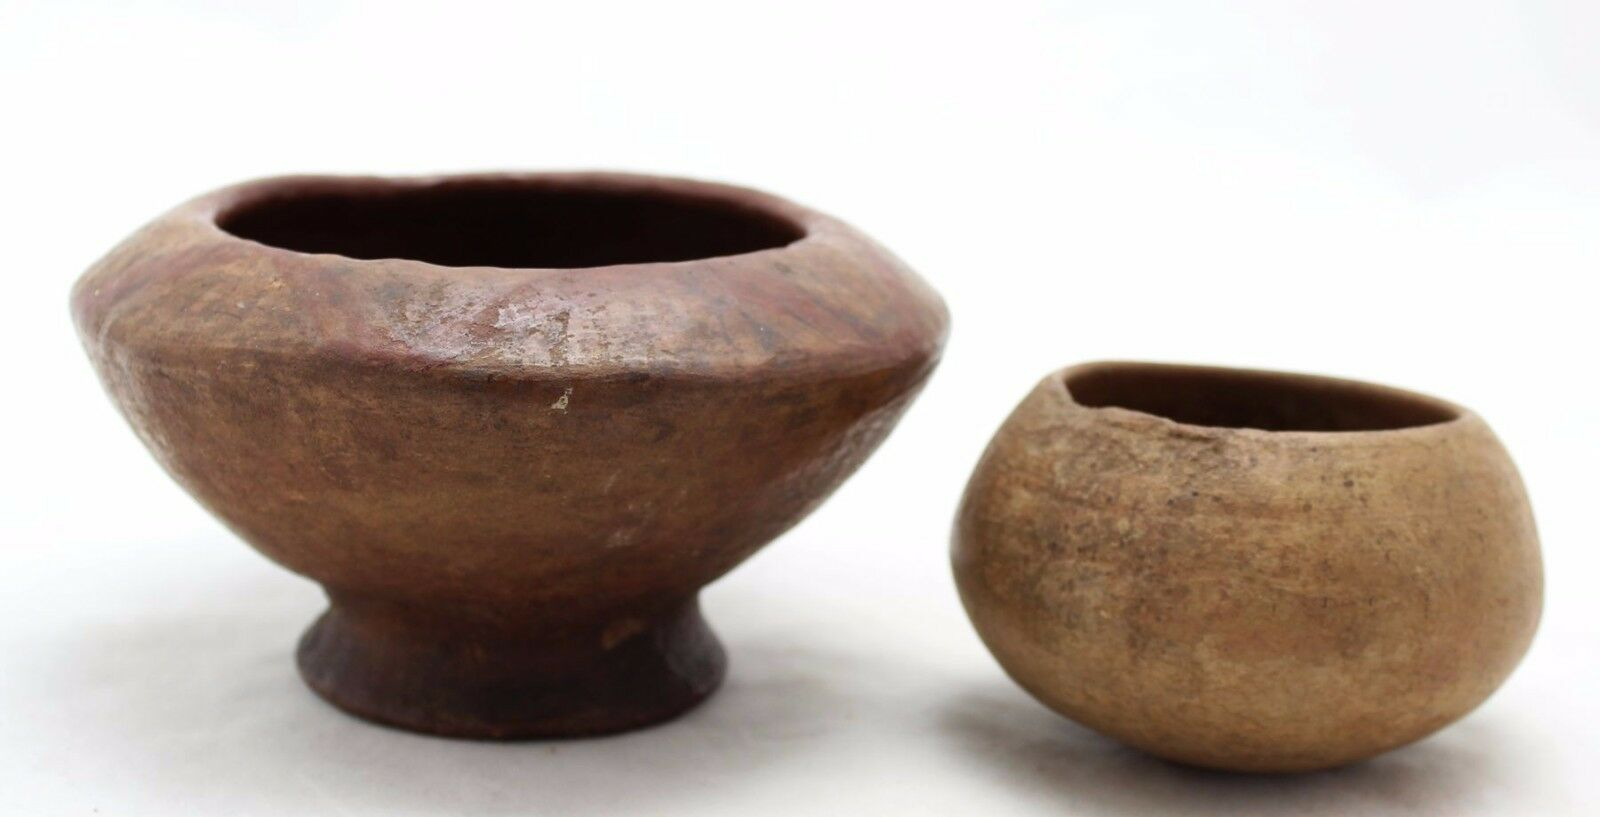 2x antique Pre Columbian pottery, small ceramic bowls, 1 with decoration